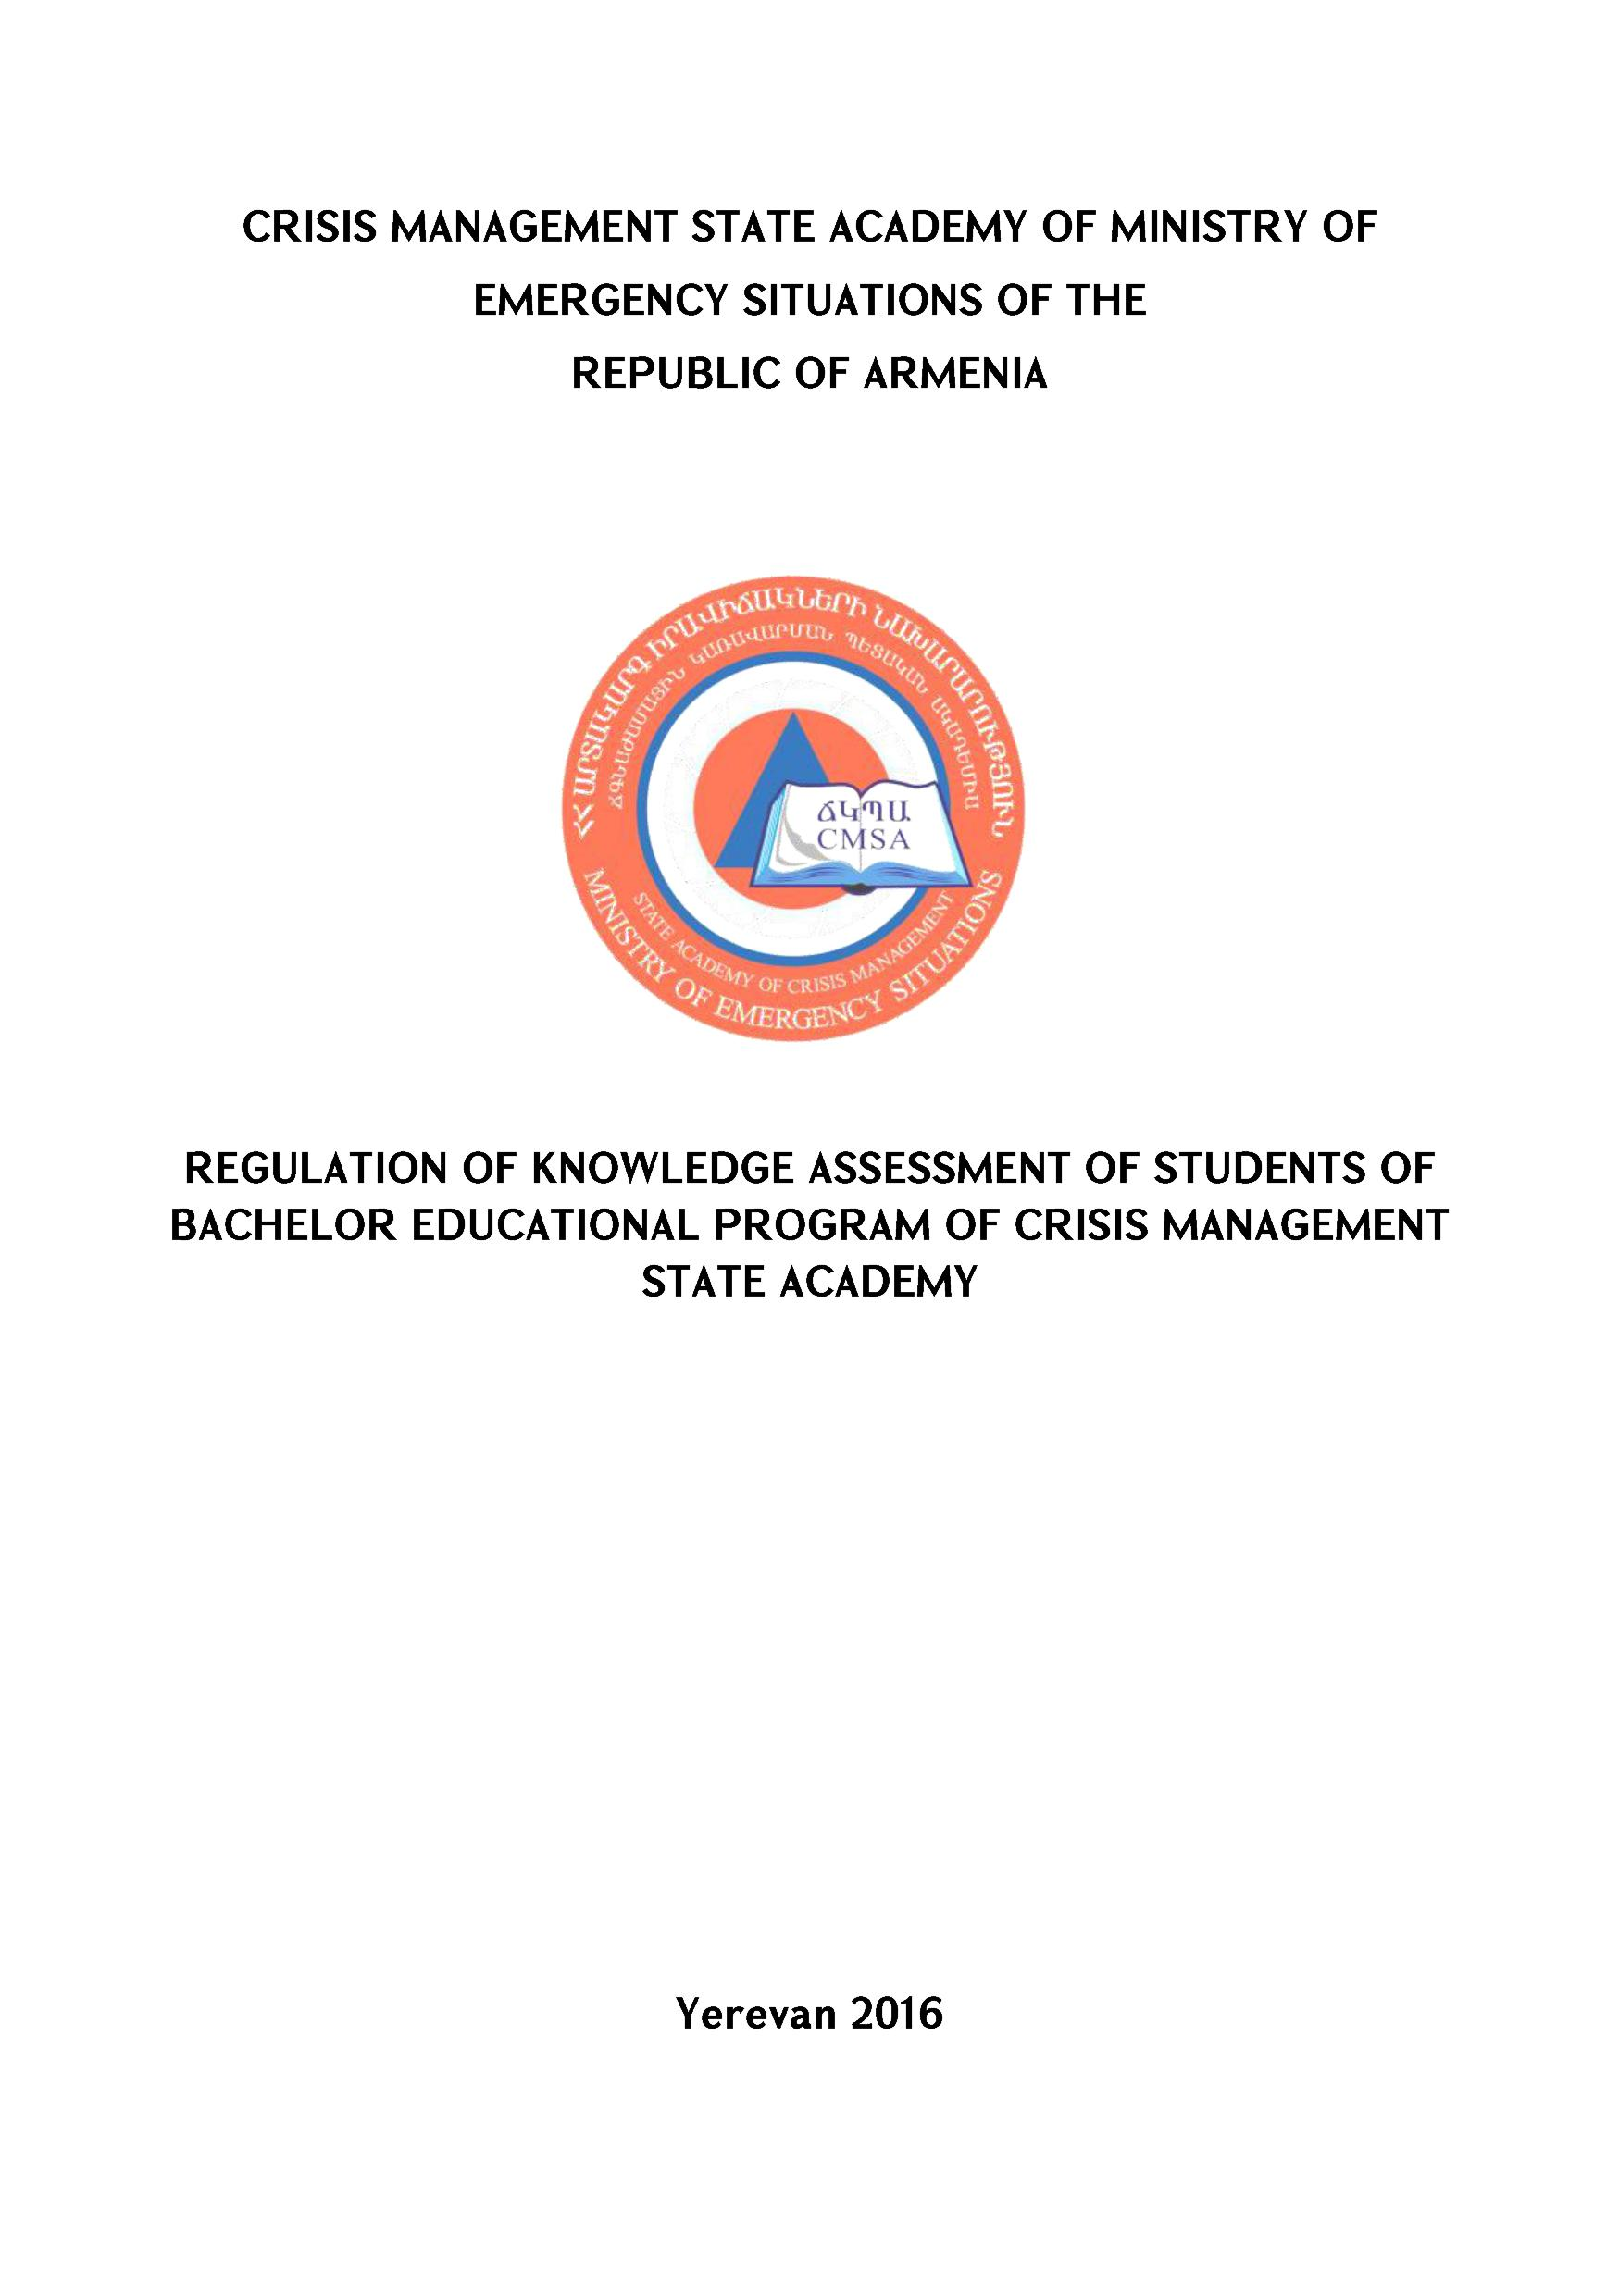 REGULATION OF KNOWLEDGE ASSESSMENT OF STUDENTS OF BACHELOR EDUCATIONAL PROGRAM OF CRISIS MANAGEMENT STATE ACADEMY